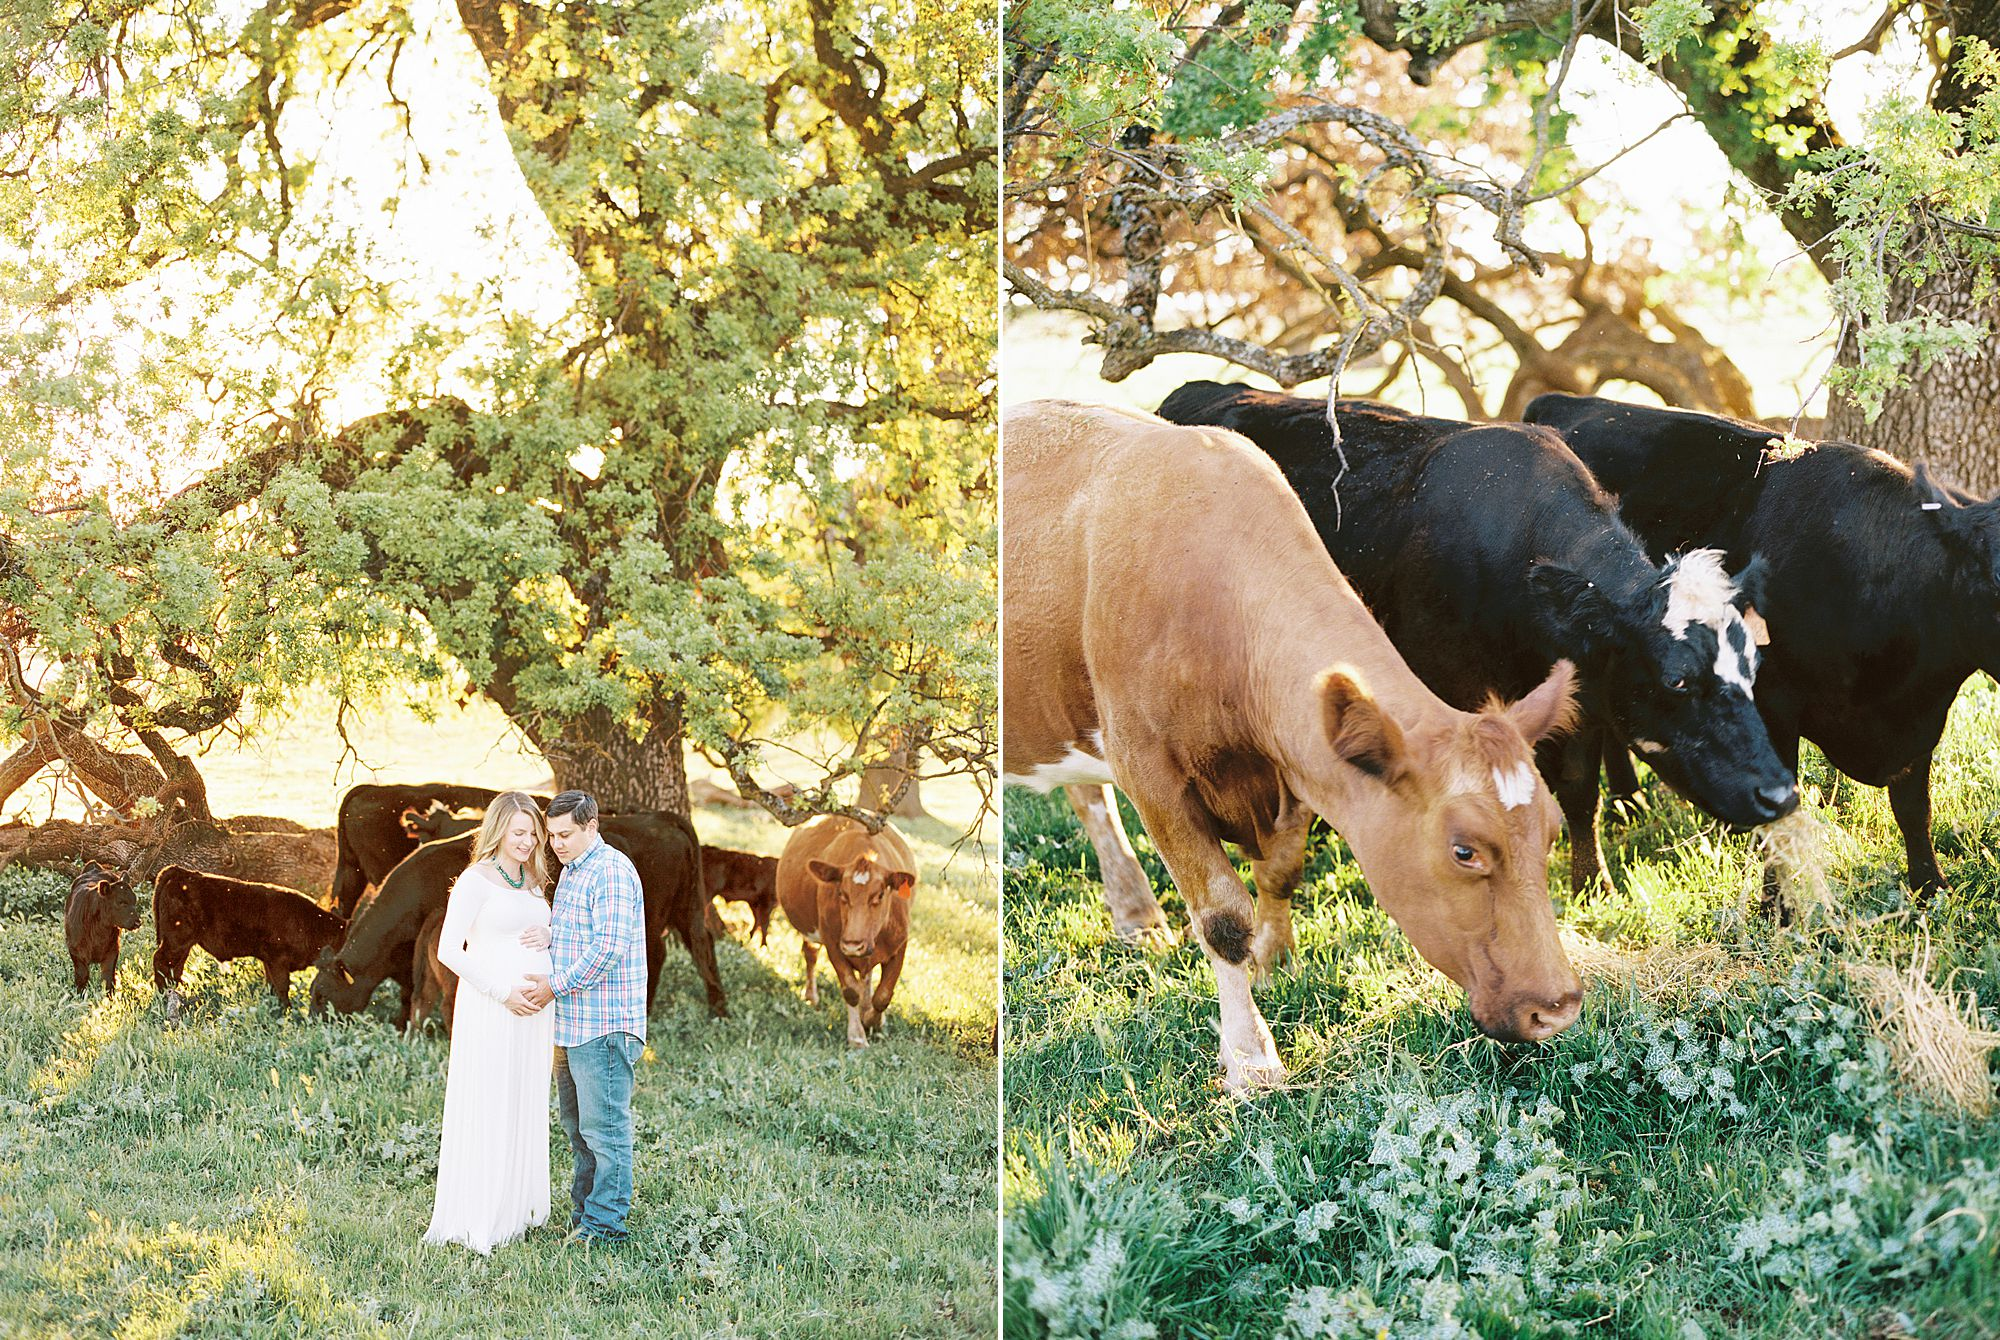 Sheridan Maternity Session - Lexie and Nick - Sacramento Maternity Photos by Ashley Baumgartner - Farmland, 4H Maternity with Cows_0003.jpg